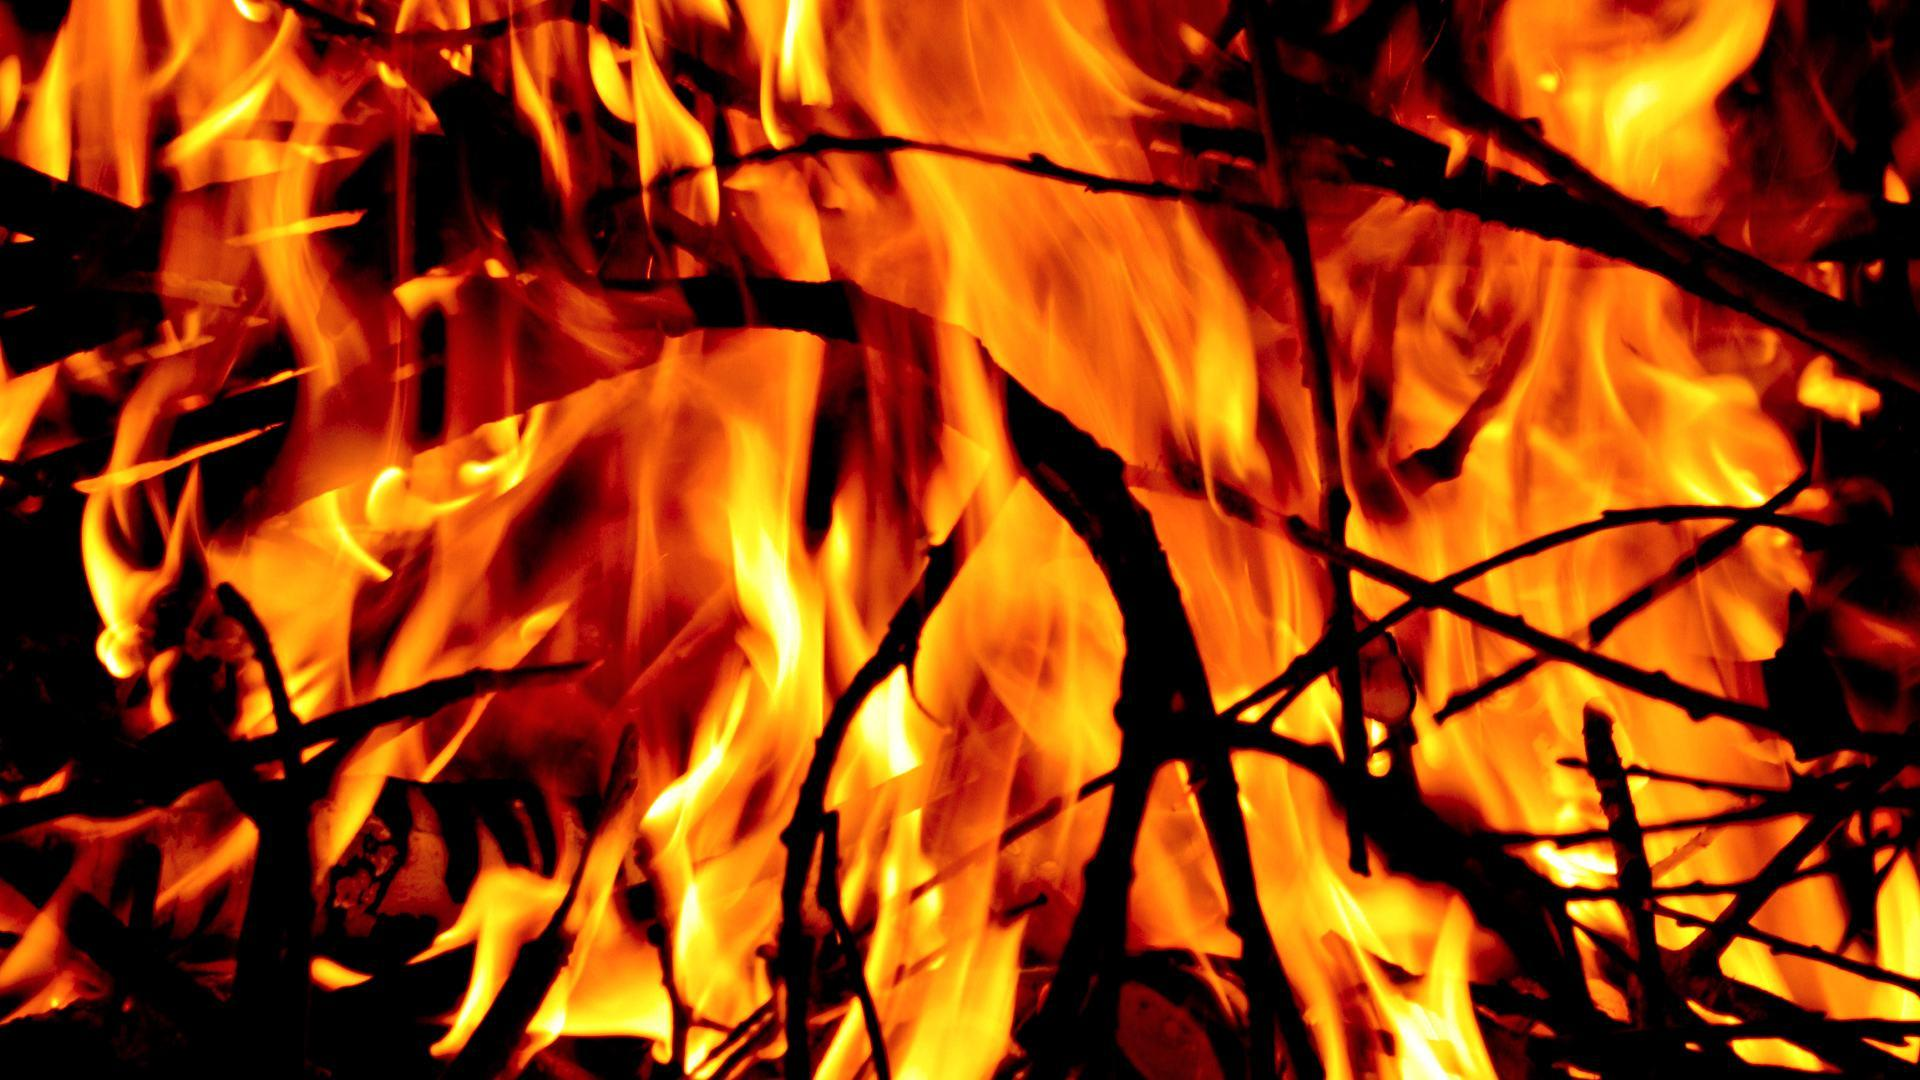 hd wallpapers desktop fire - photo #26